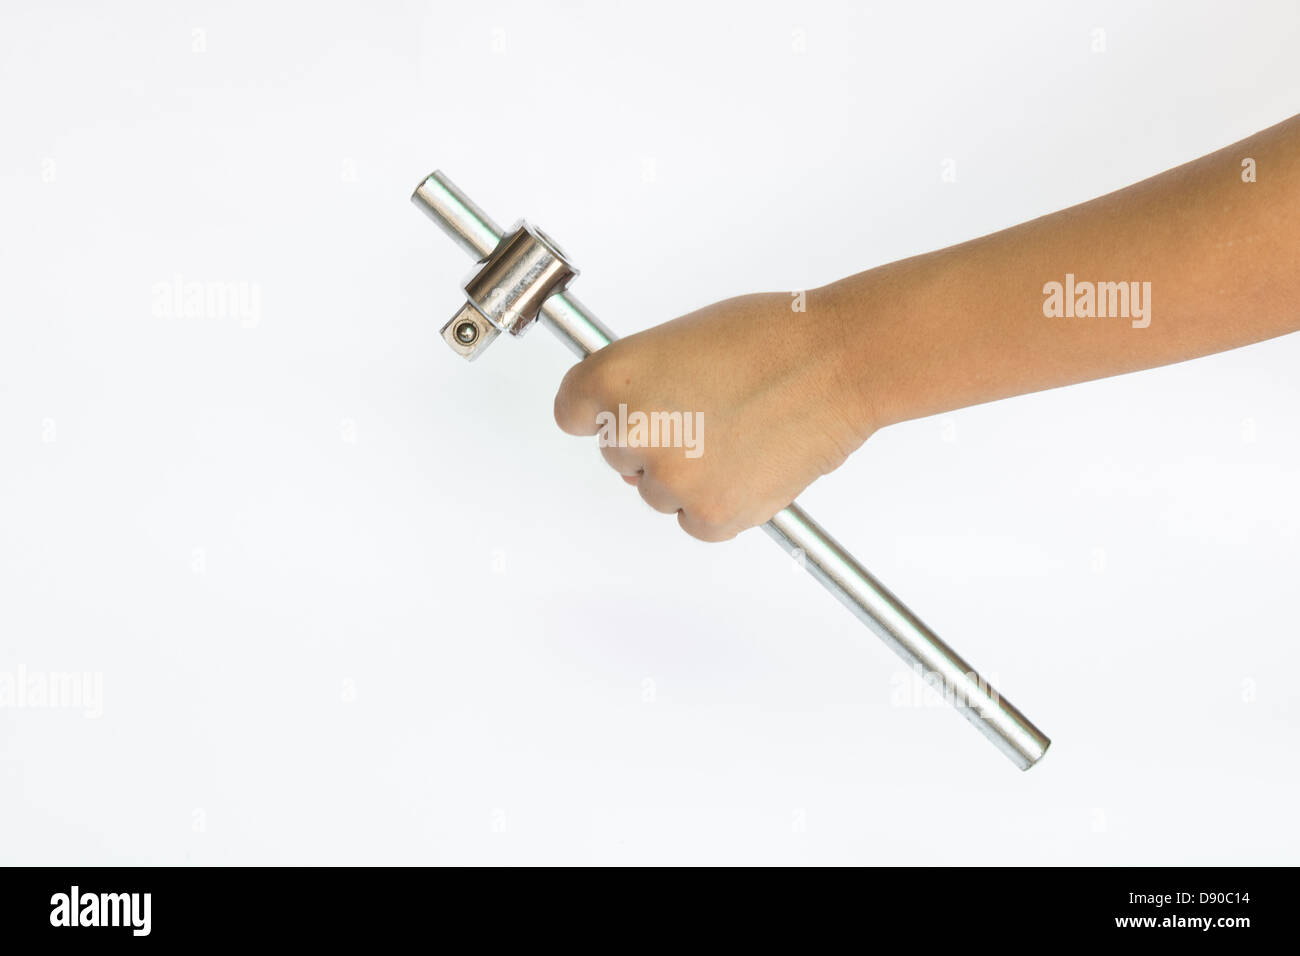 wrench on hand isolate - Stock Image